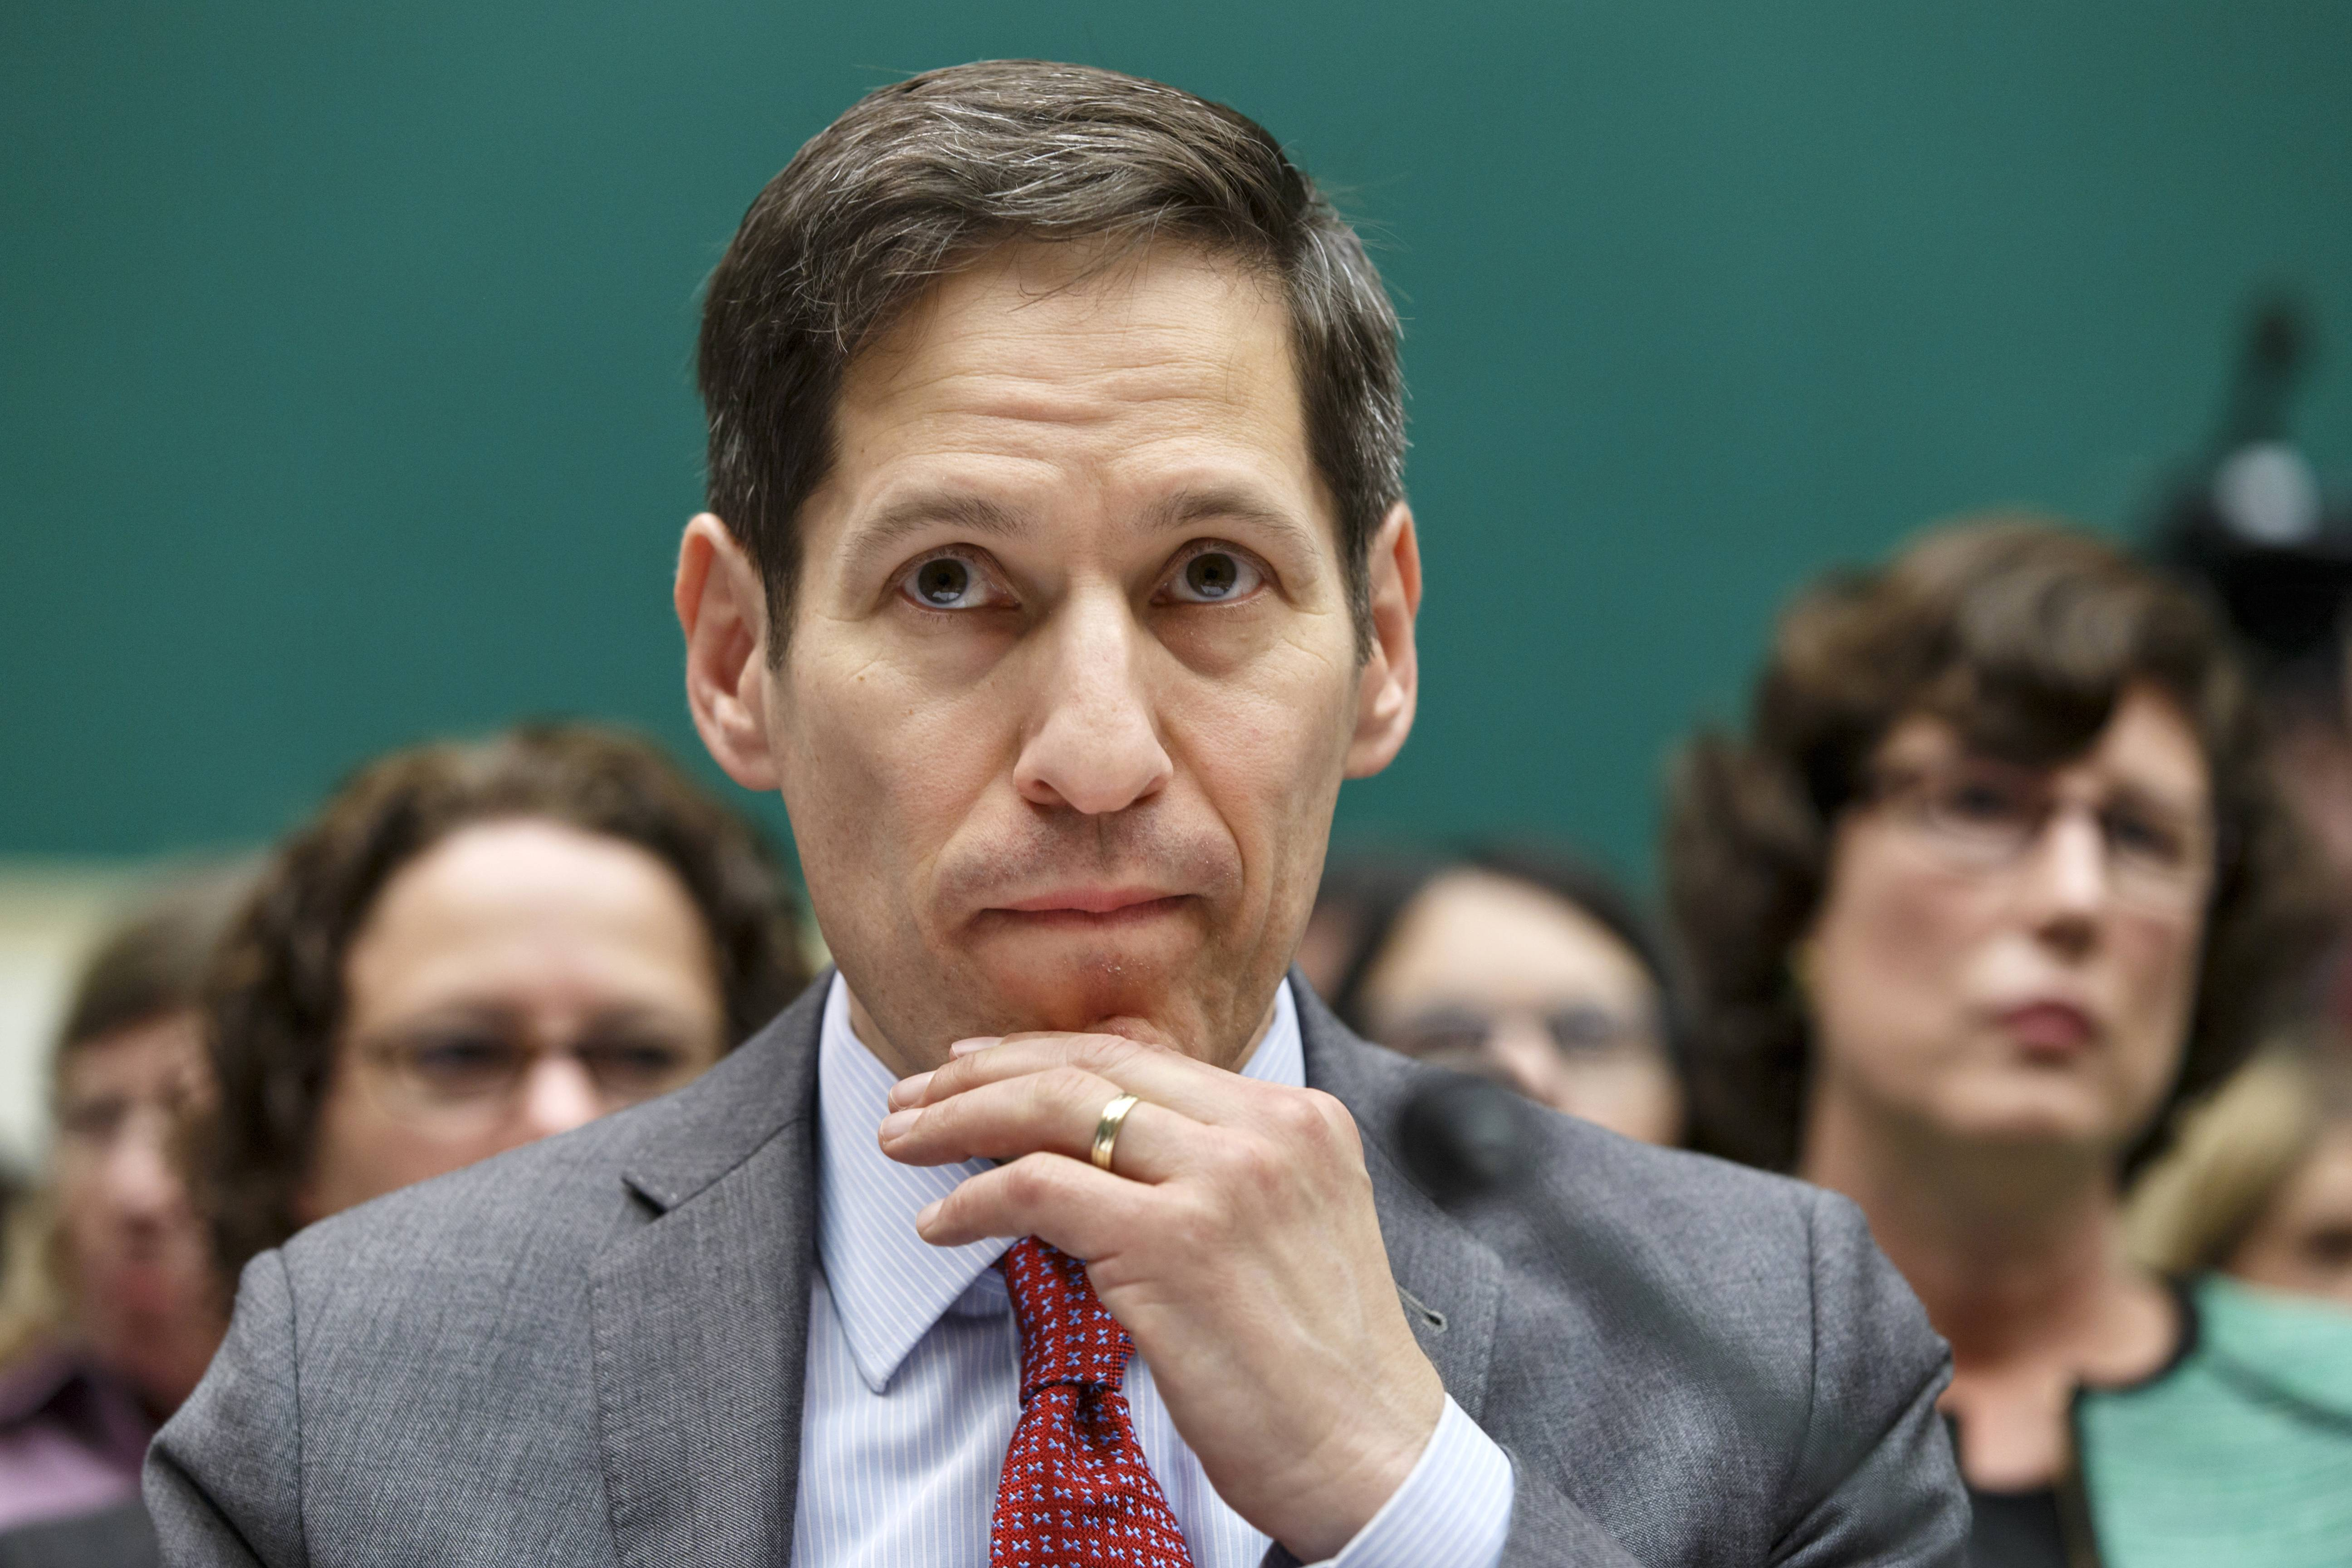 Centers for Disease Control and Prevention (CDC) Director Dr. Tom Frieden listens as he testifies on Capitol Hill in Washington. Health workers on the front-line of the Ebola crisis say the need for urgent help isn't letting up, as Congress begins considering the $6.2 billion emergency aid request.